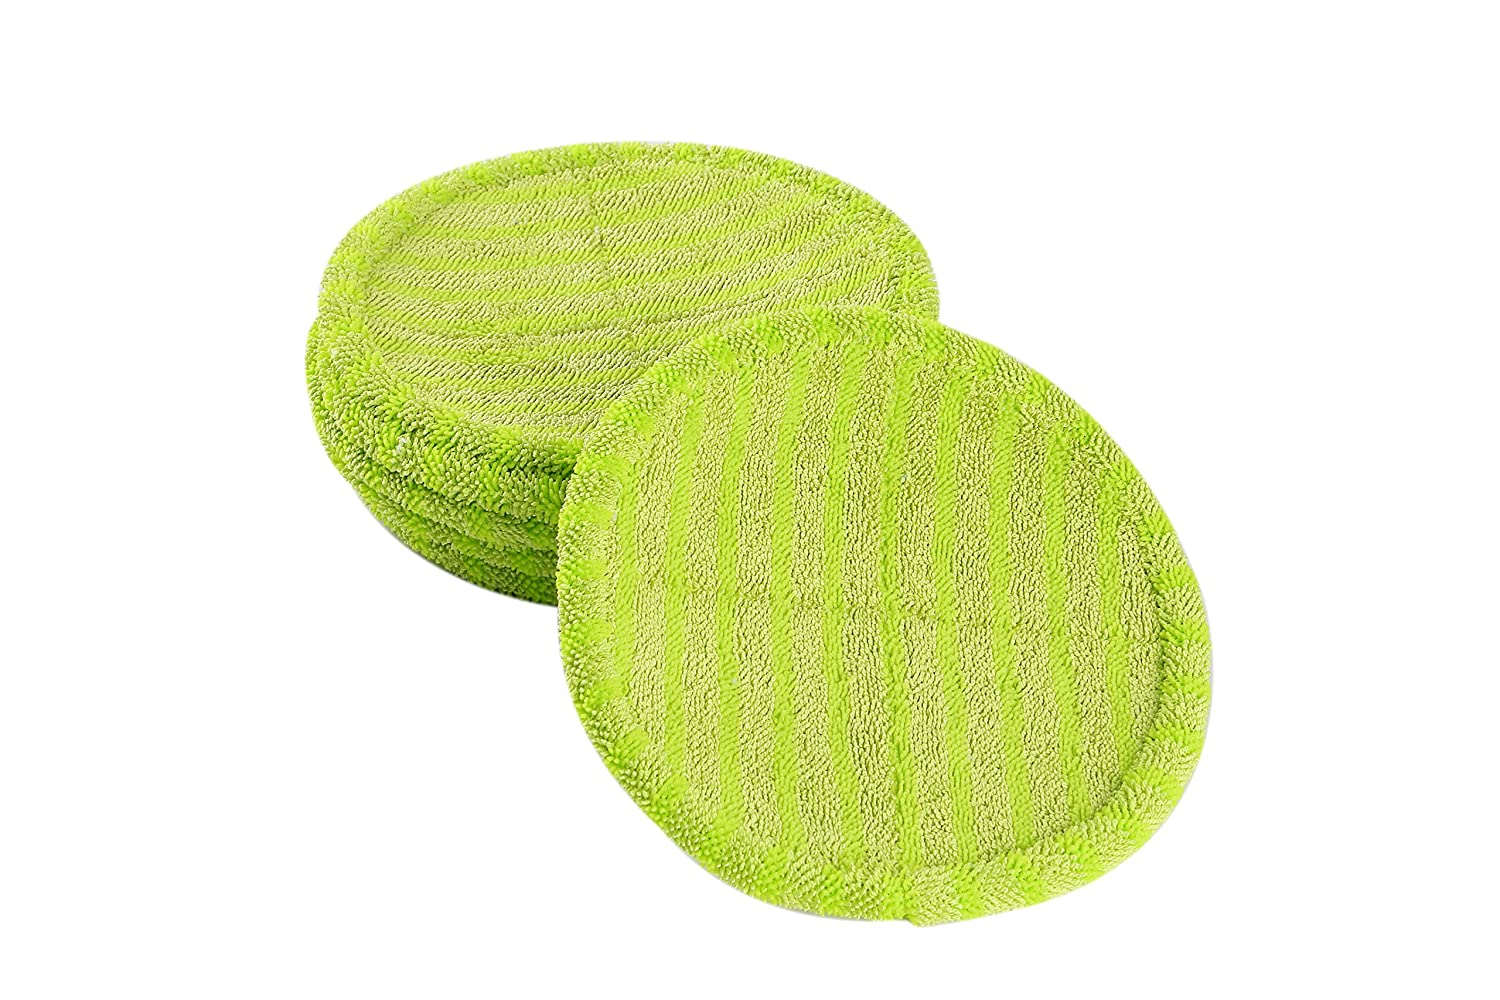 LTWHOME Replacement Scrubby Mop Pads Fit for Bissell Spinwave 2039 Series 2039A 2124 (Pack of 6) NingboHaishuHuaxinYichengTradeCo. Ltd.